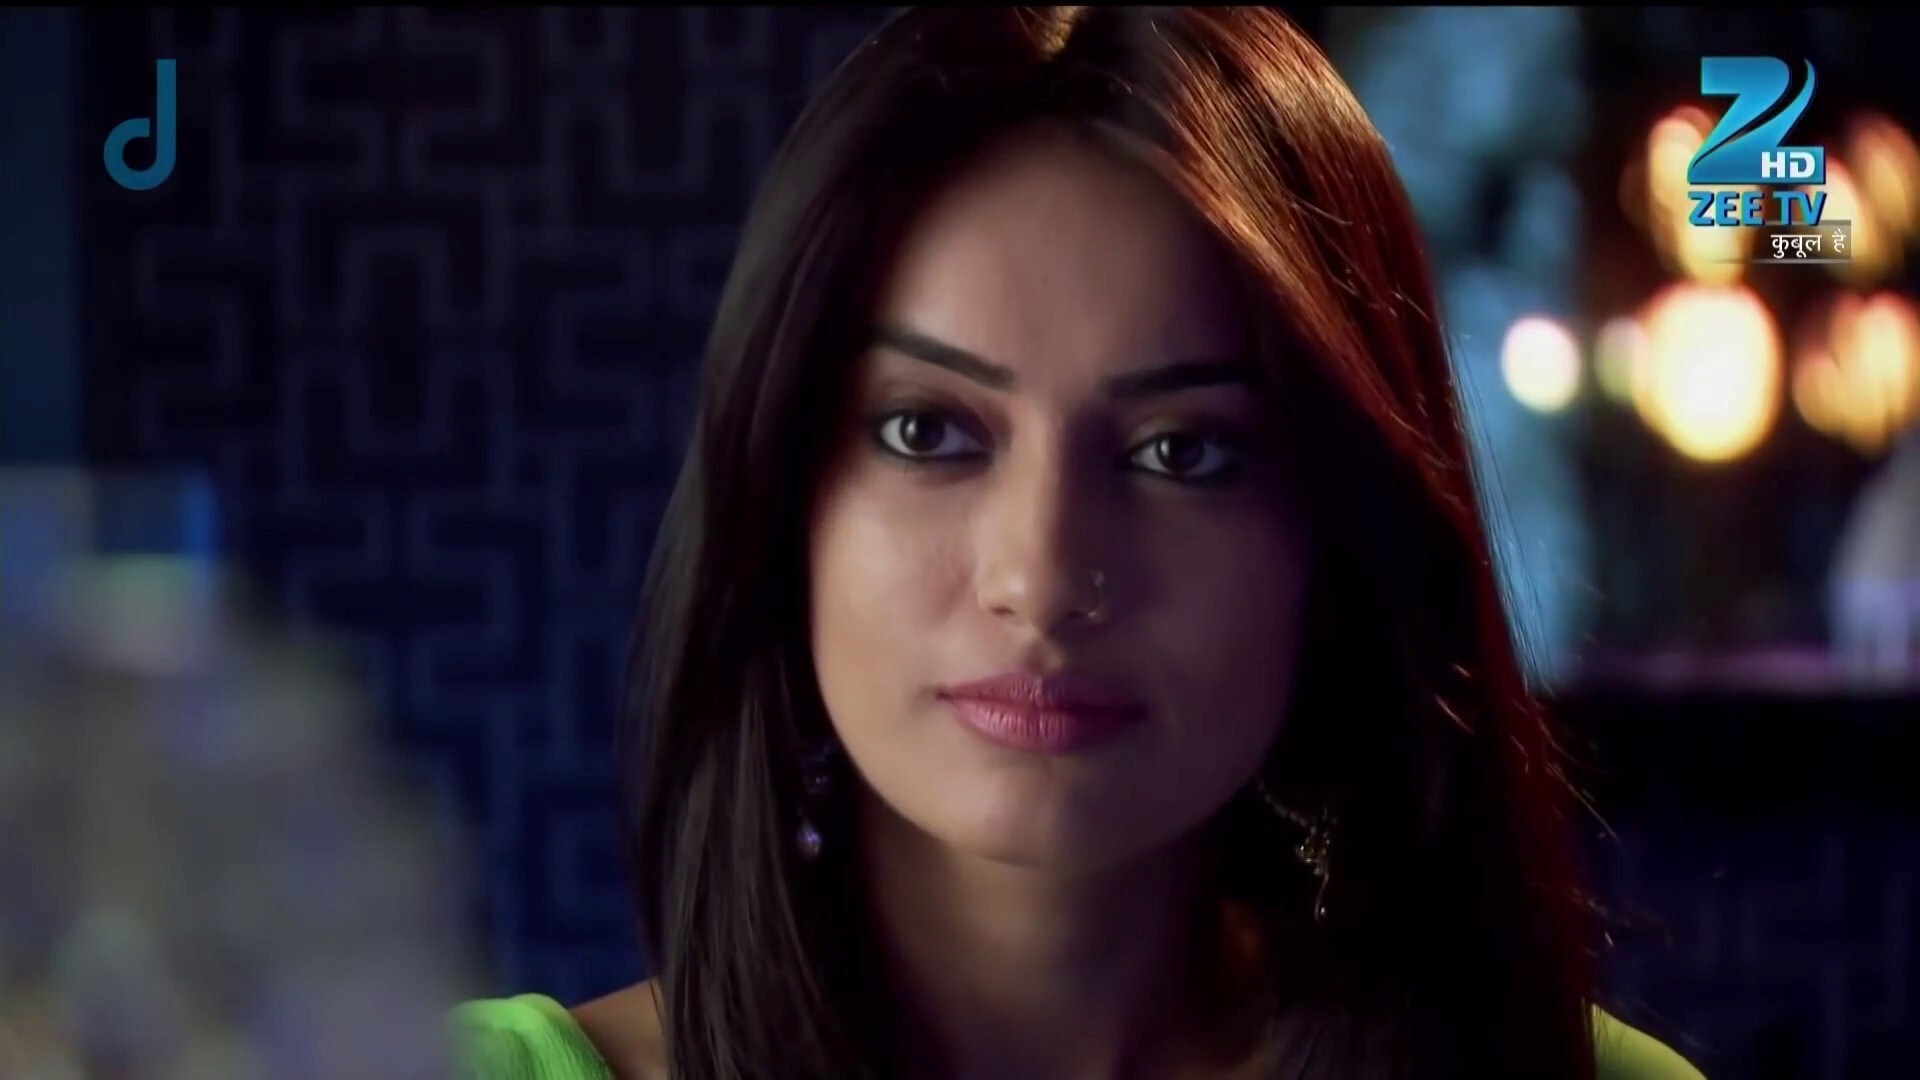 surbhi jyoti hd wallpapers images pictures photos download